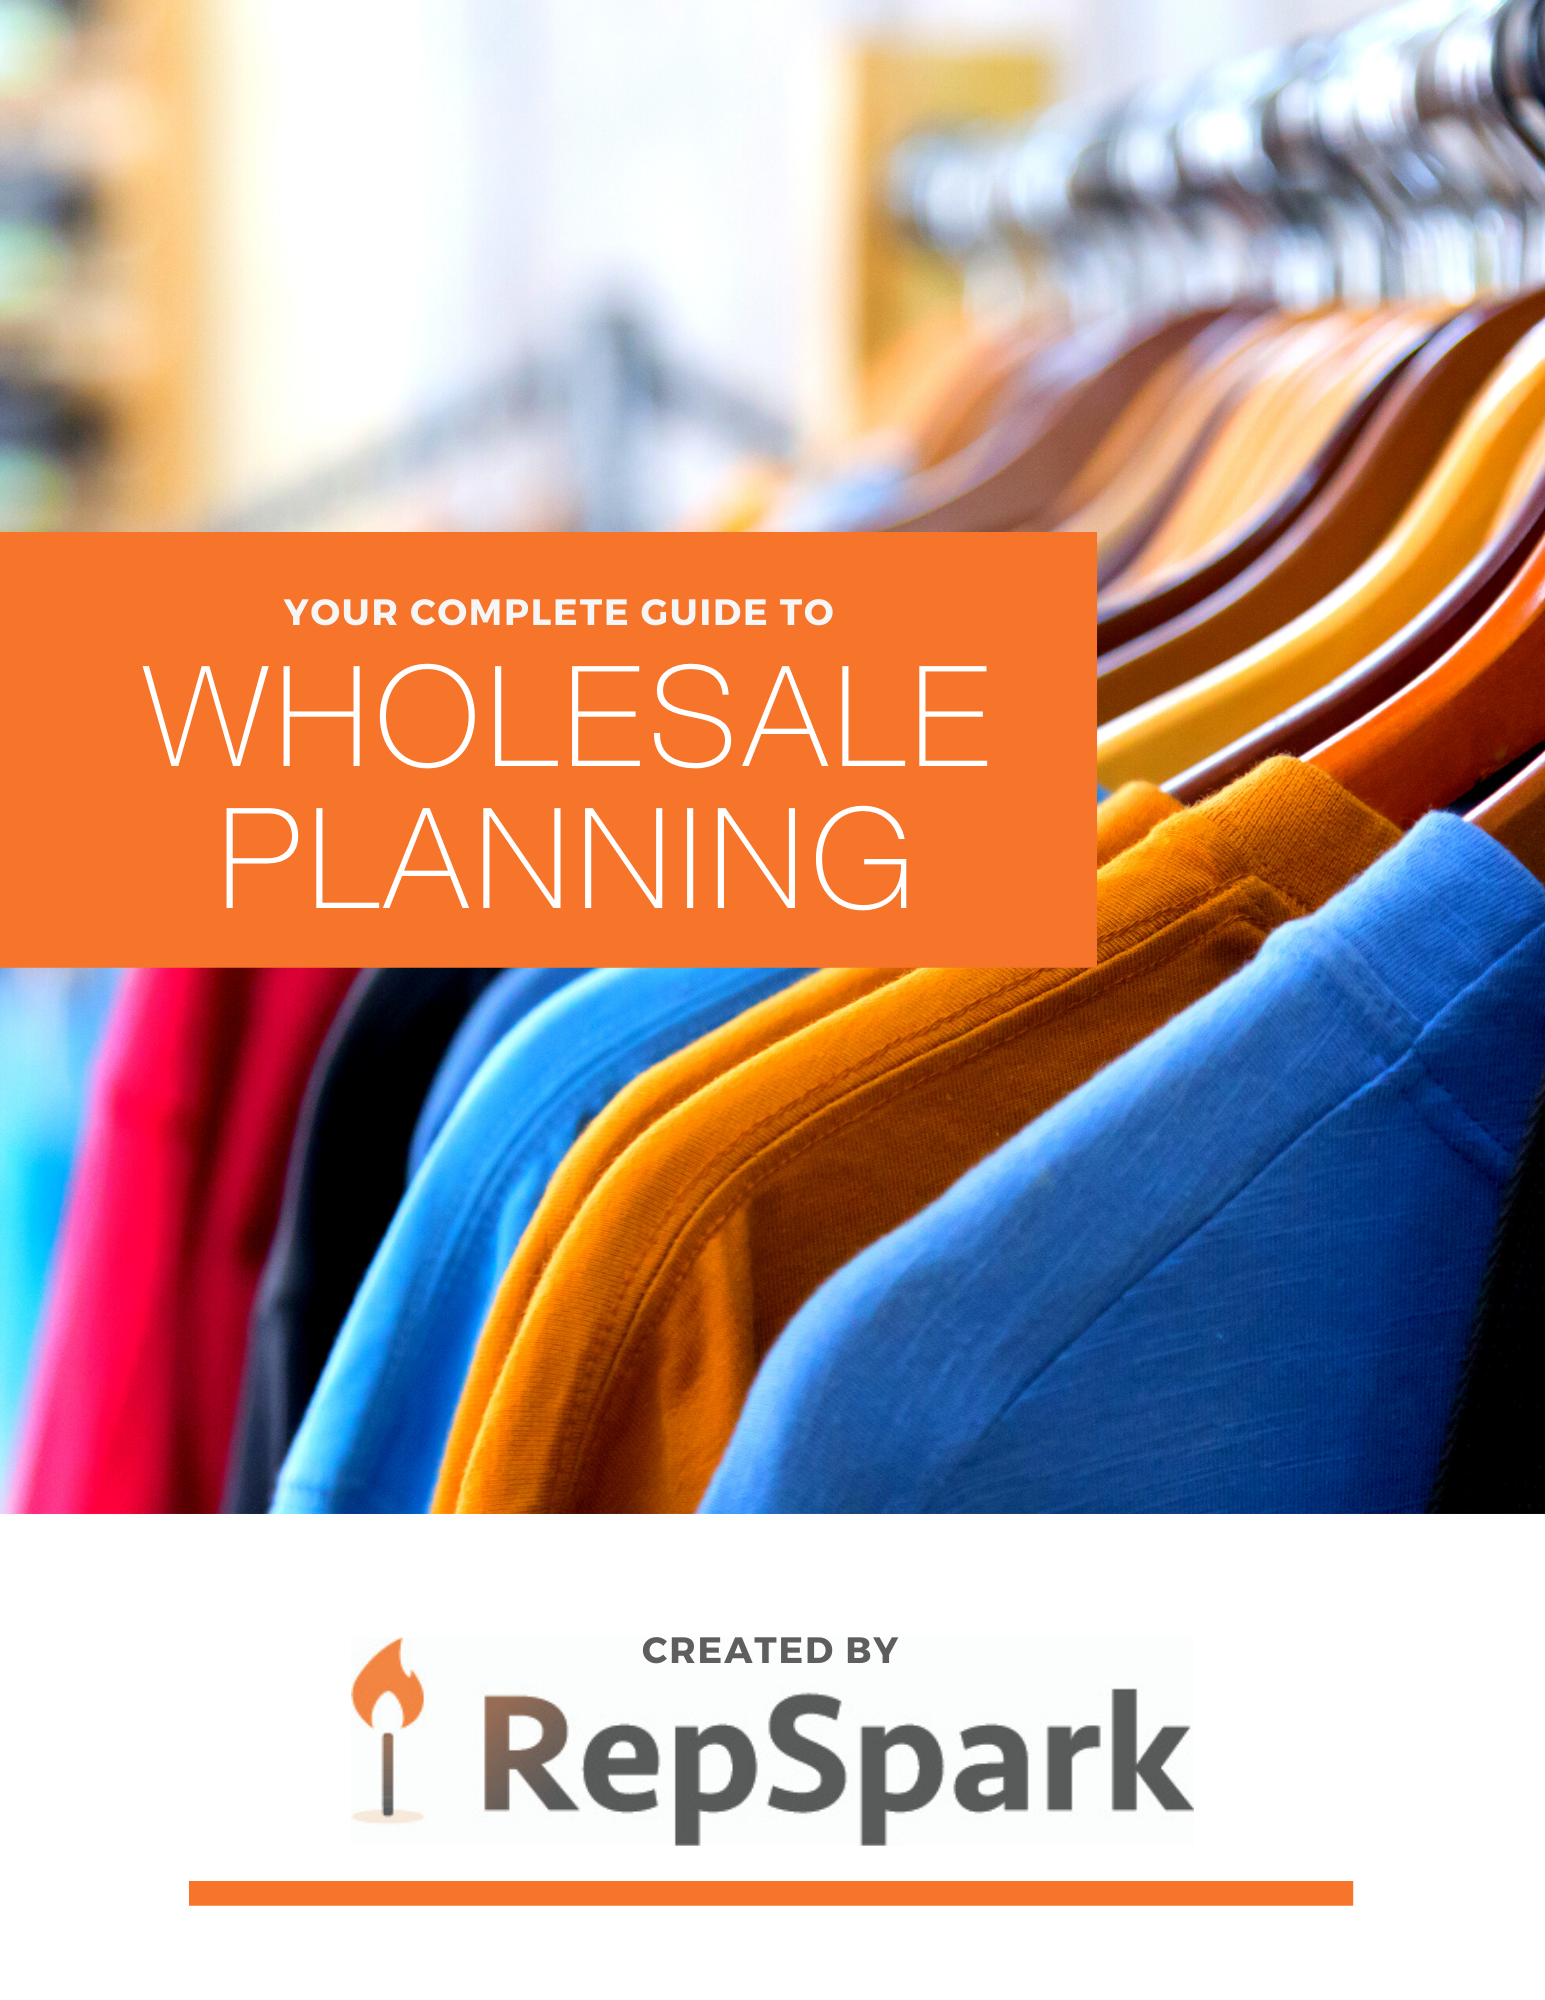 _RepSpark's Complete Guide to Wholesale Planning